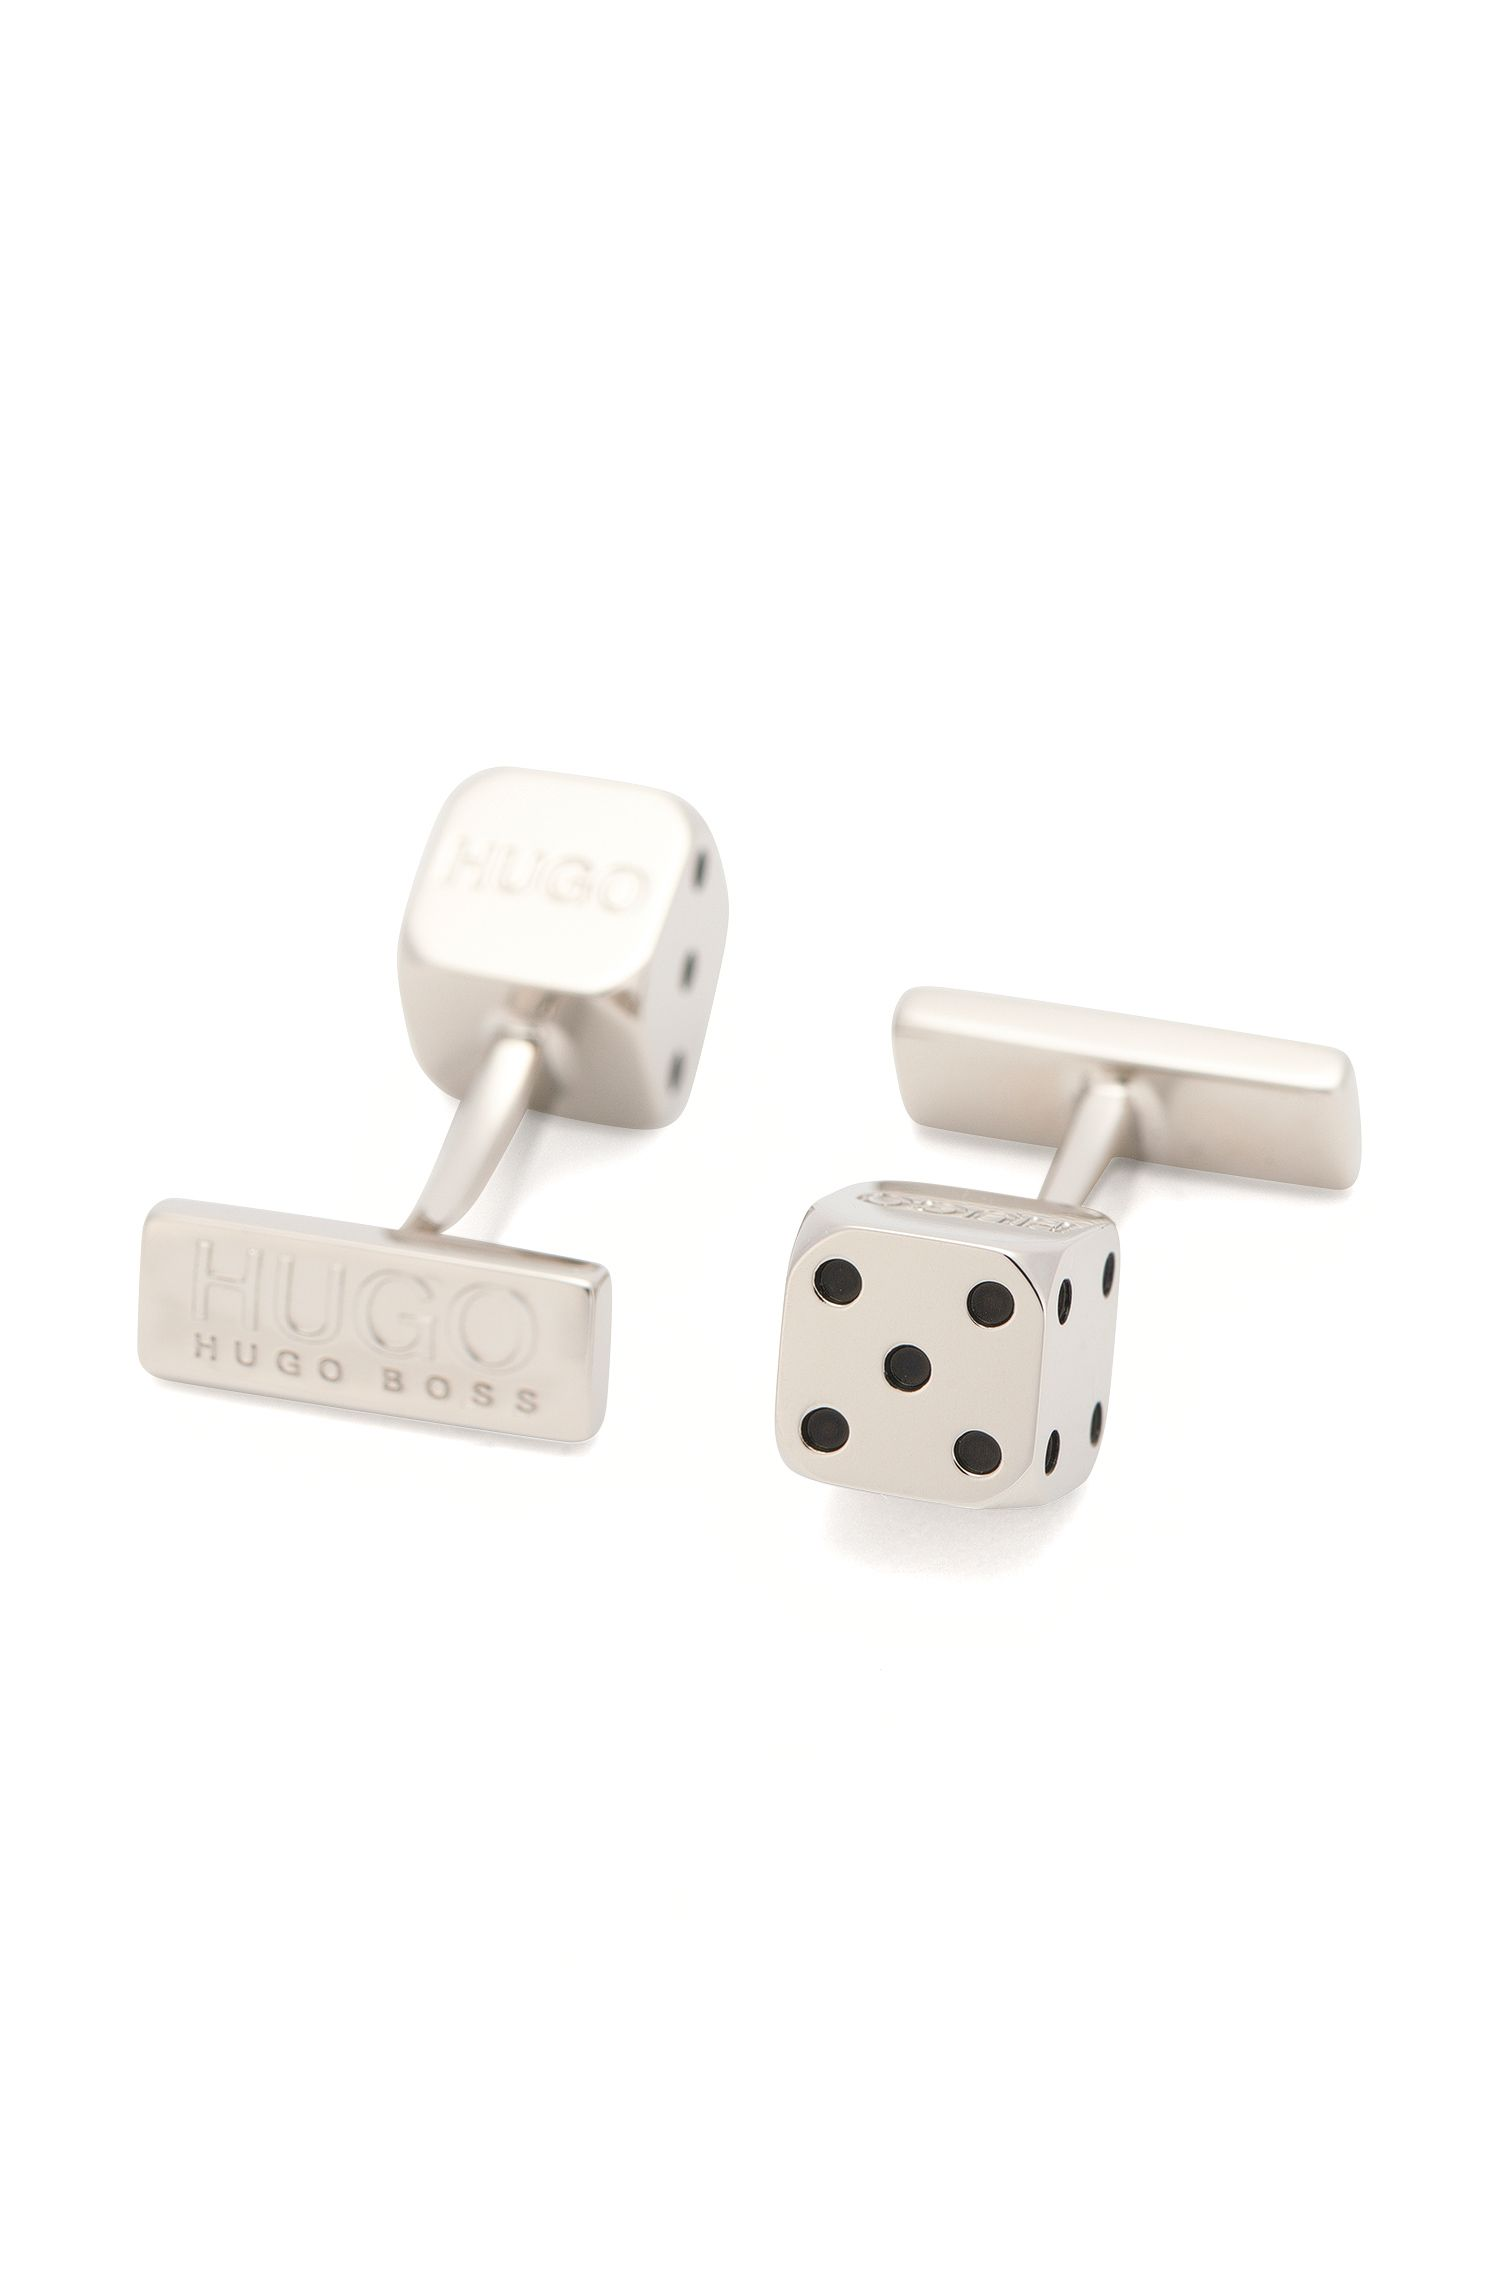 Brass Dice Cufflinks | E-DICE